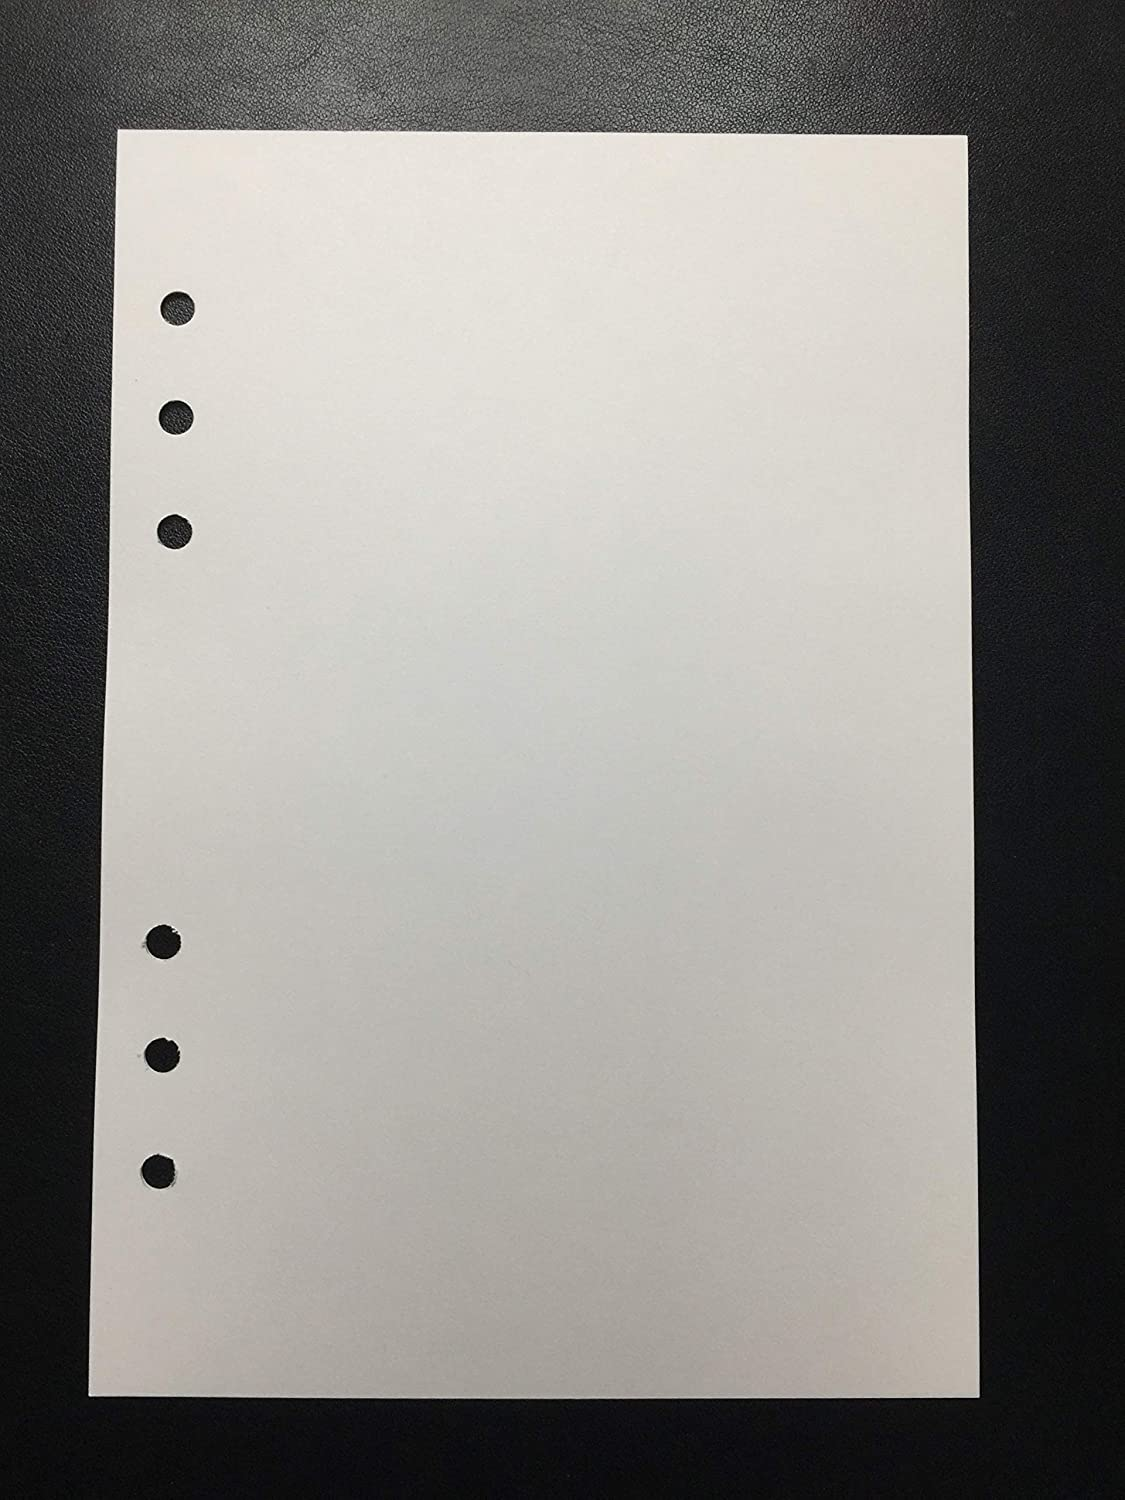 A5 White Plain Paper 6 Hole Punched or Unpunched Printable Blank Quality Unlined Paper No Lines Unlined